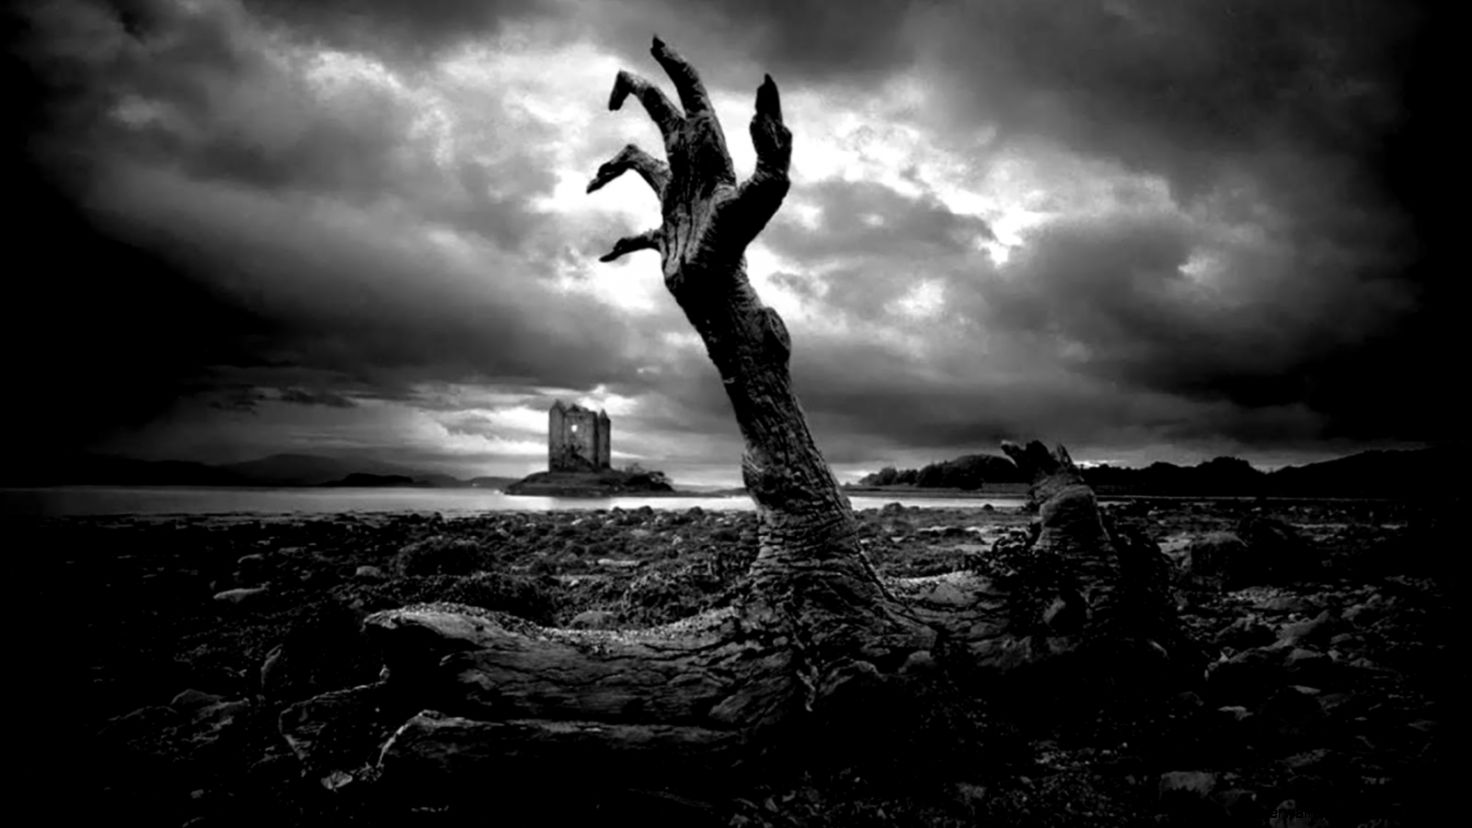 Wallpaper Hd 1080P Black And White Zombie Super Wallpapers 1472x828